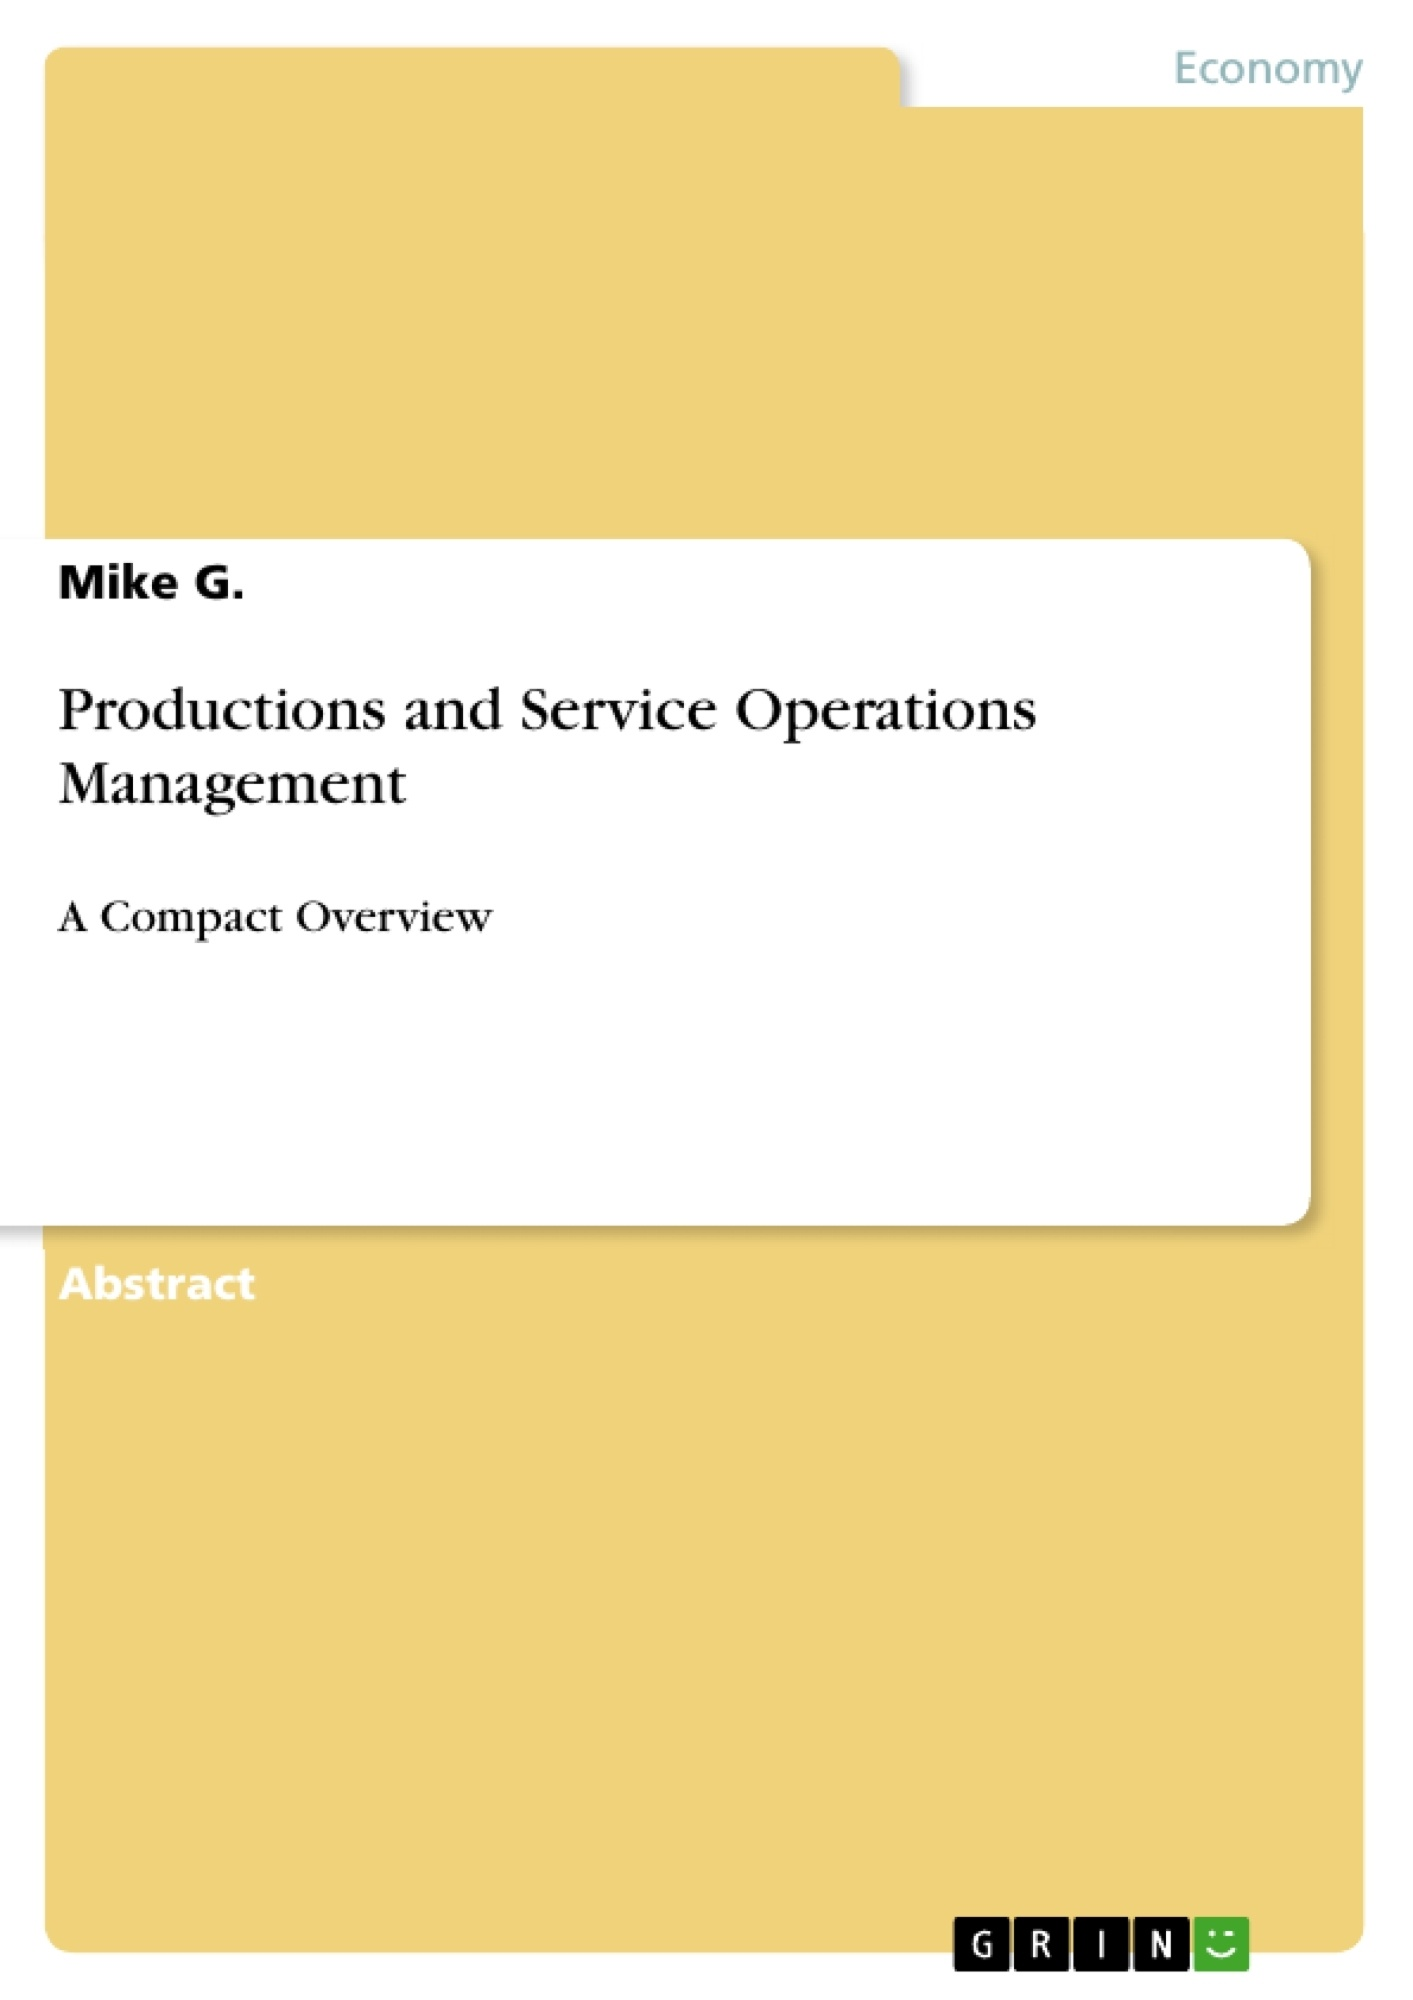 Title: Productions and Service Operations Management